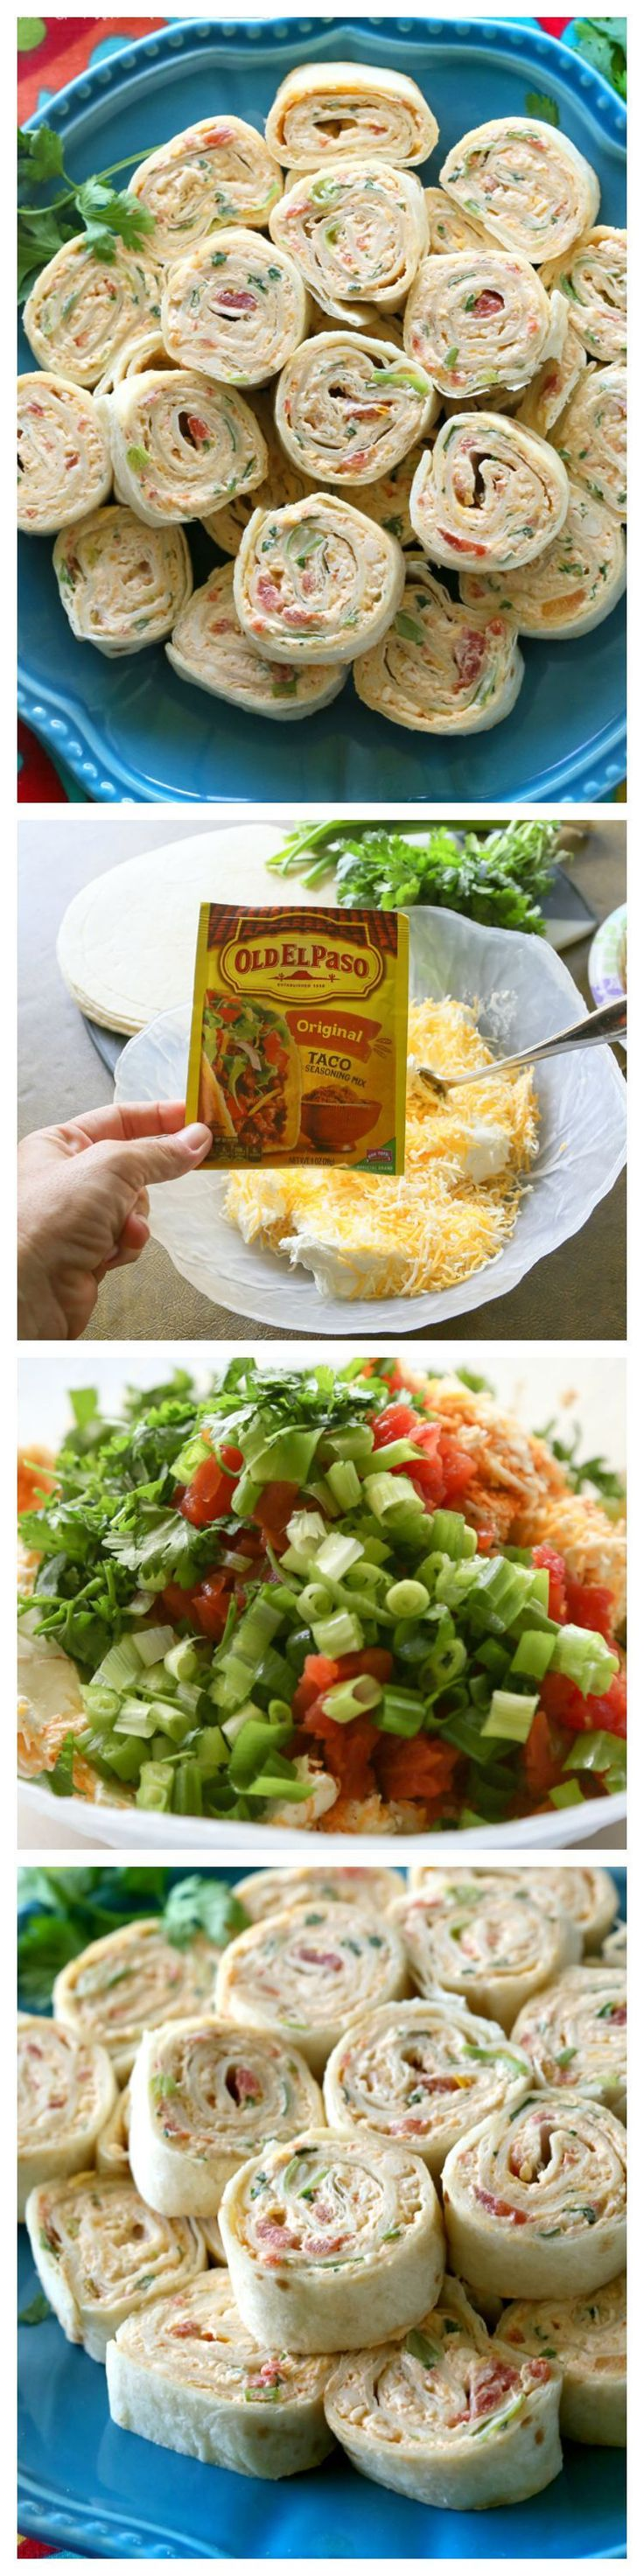 These Chicken Enchilada Roll Ups are a great appetizer for parties! Easy to make ahead and easy to serve.